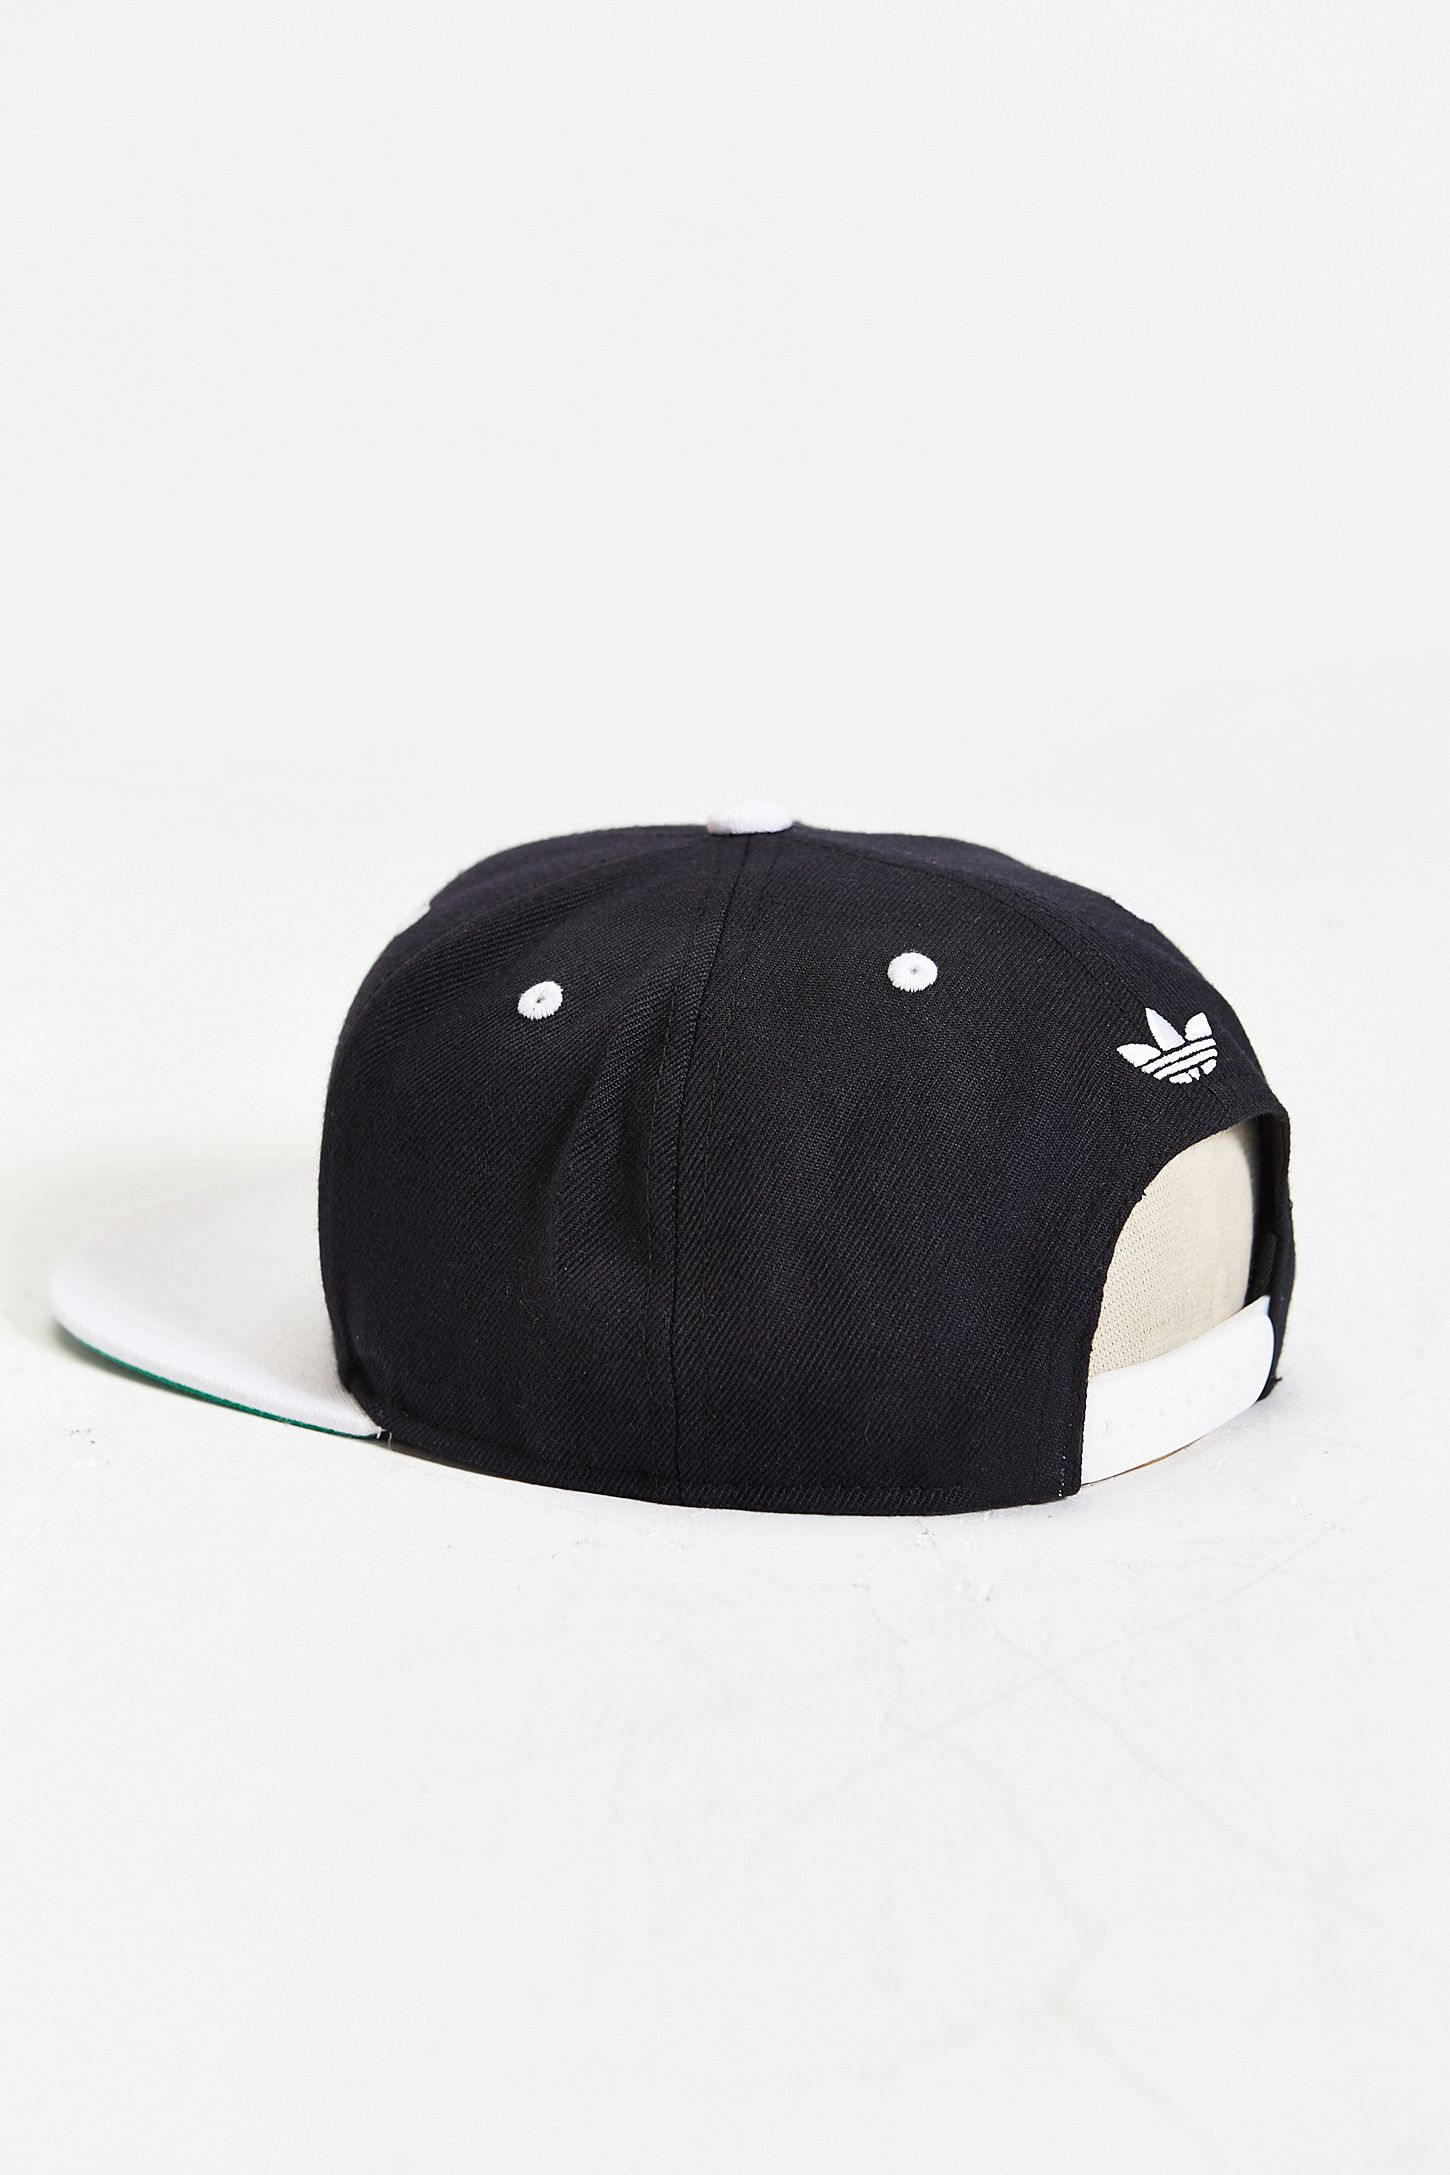 Slide View  6  adidas Originals Thrasher II Snapback Hat e3b7acd2900